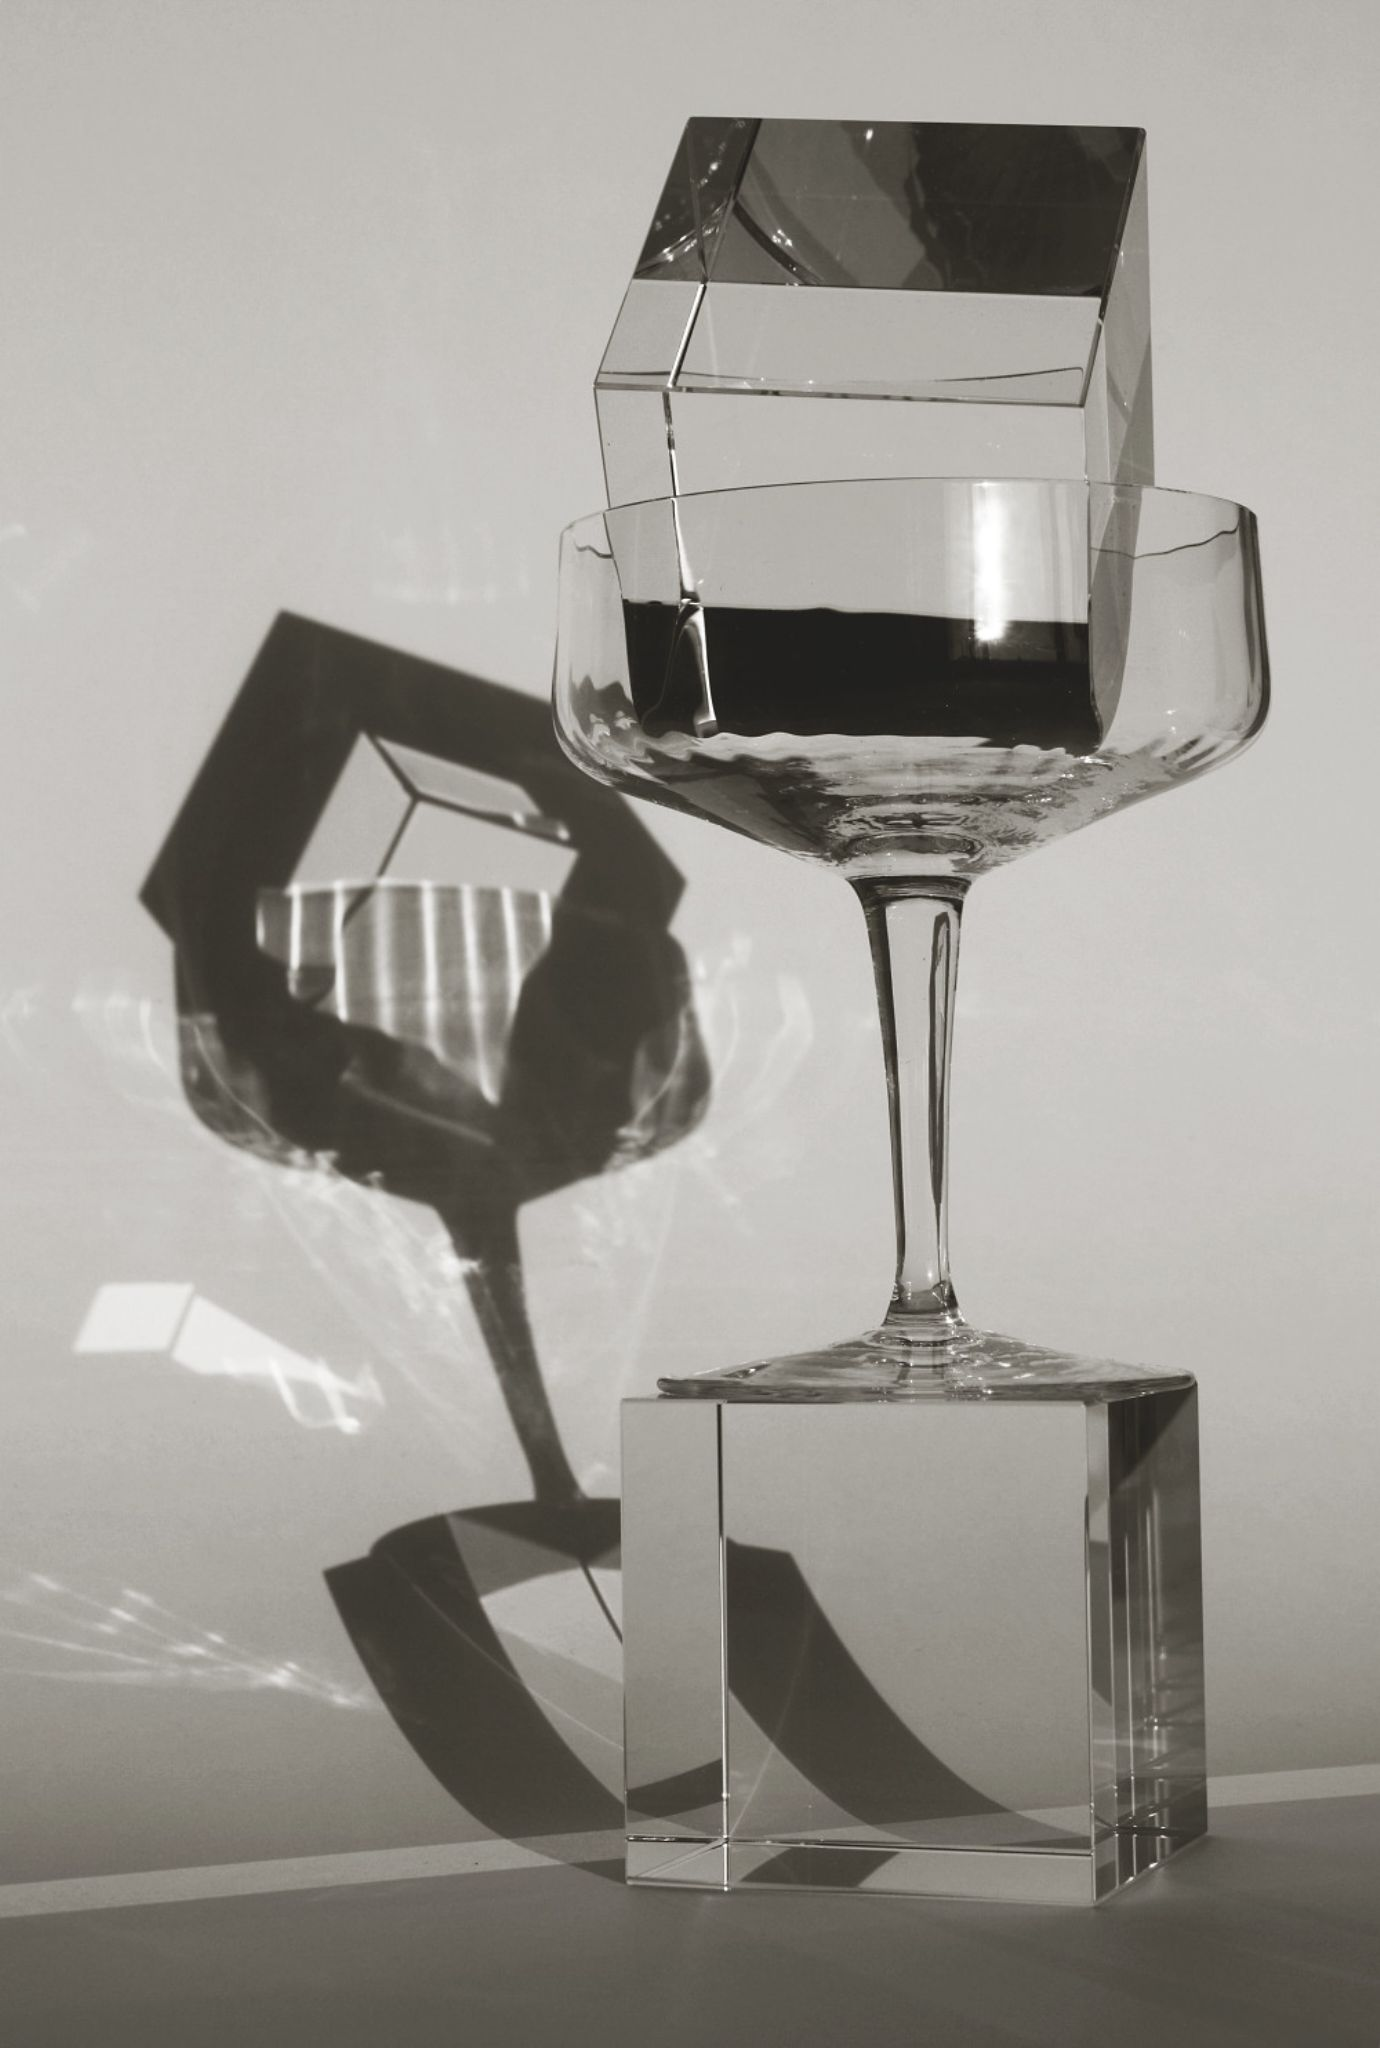 still life with a glass and a cube by Robert Zauer